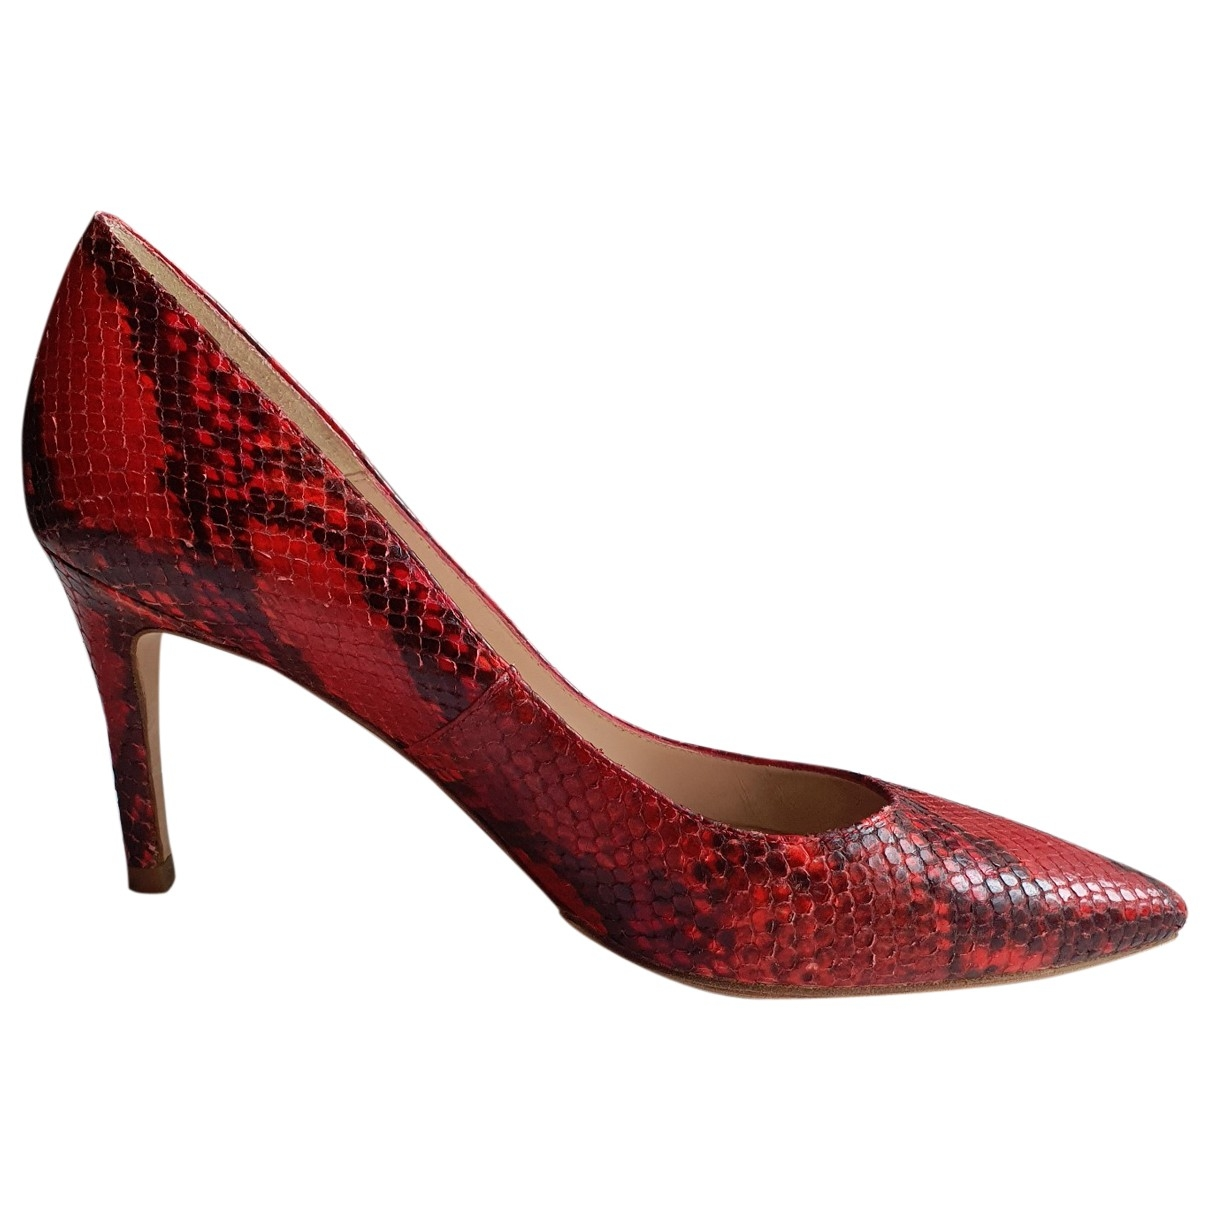 Lk Bennett \N Red Leather Heels for Women 40 EU